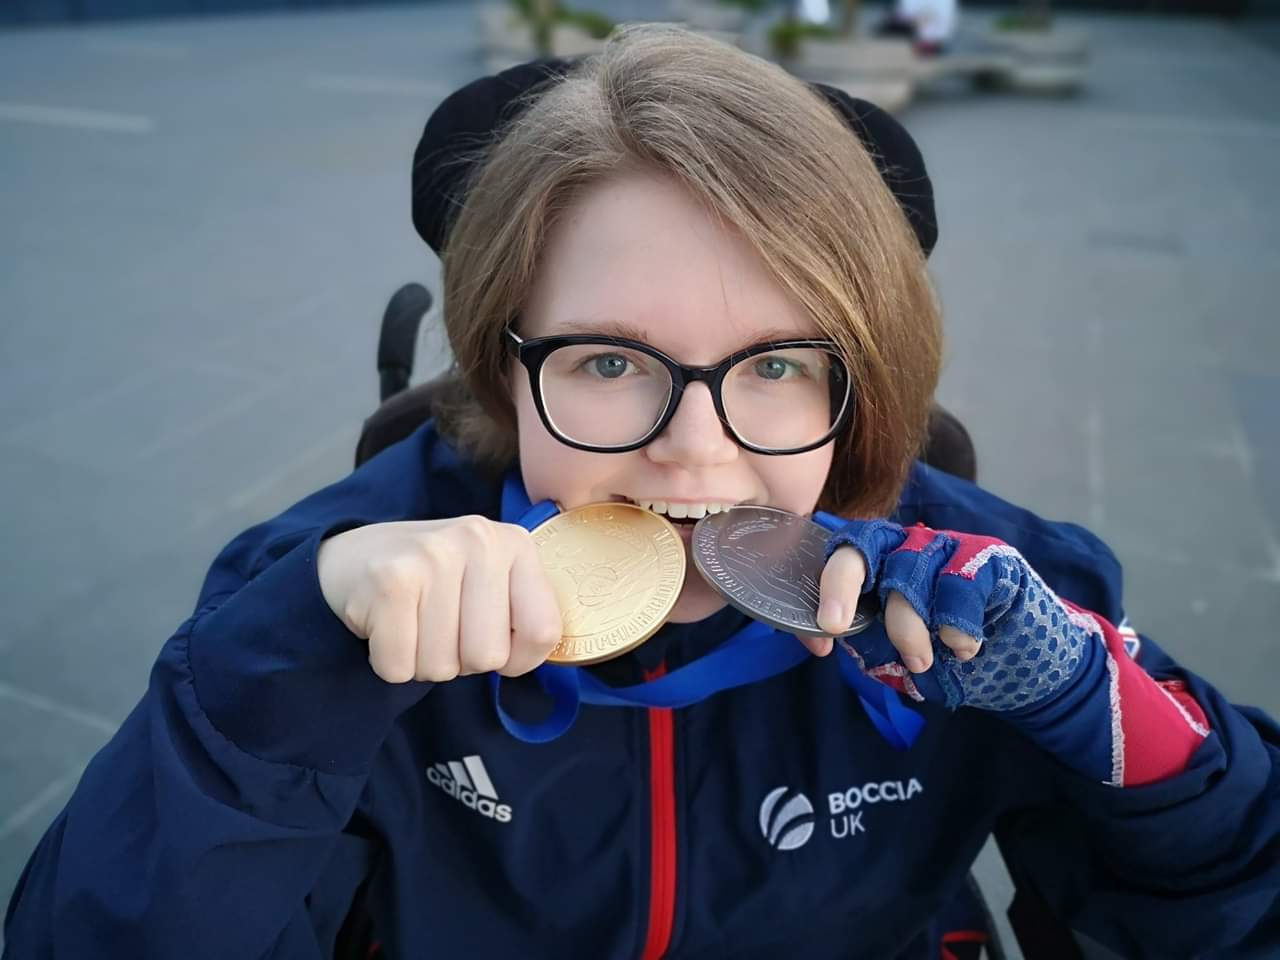 Claire Taggart holding Silver and Gold medals in her mouth.